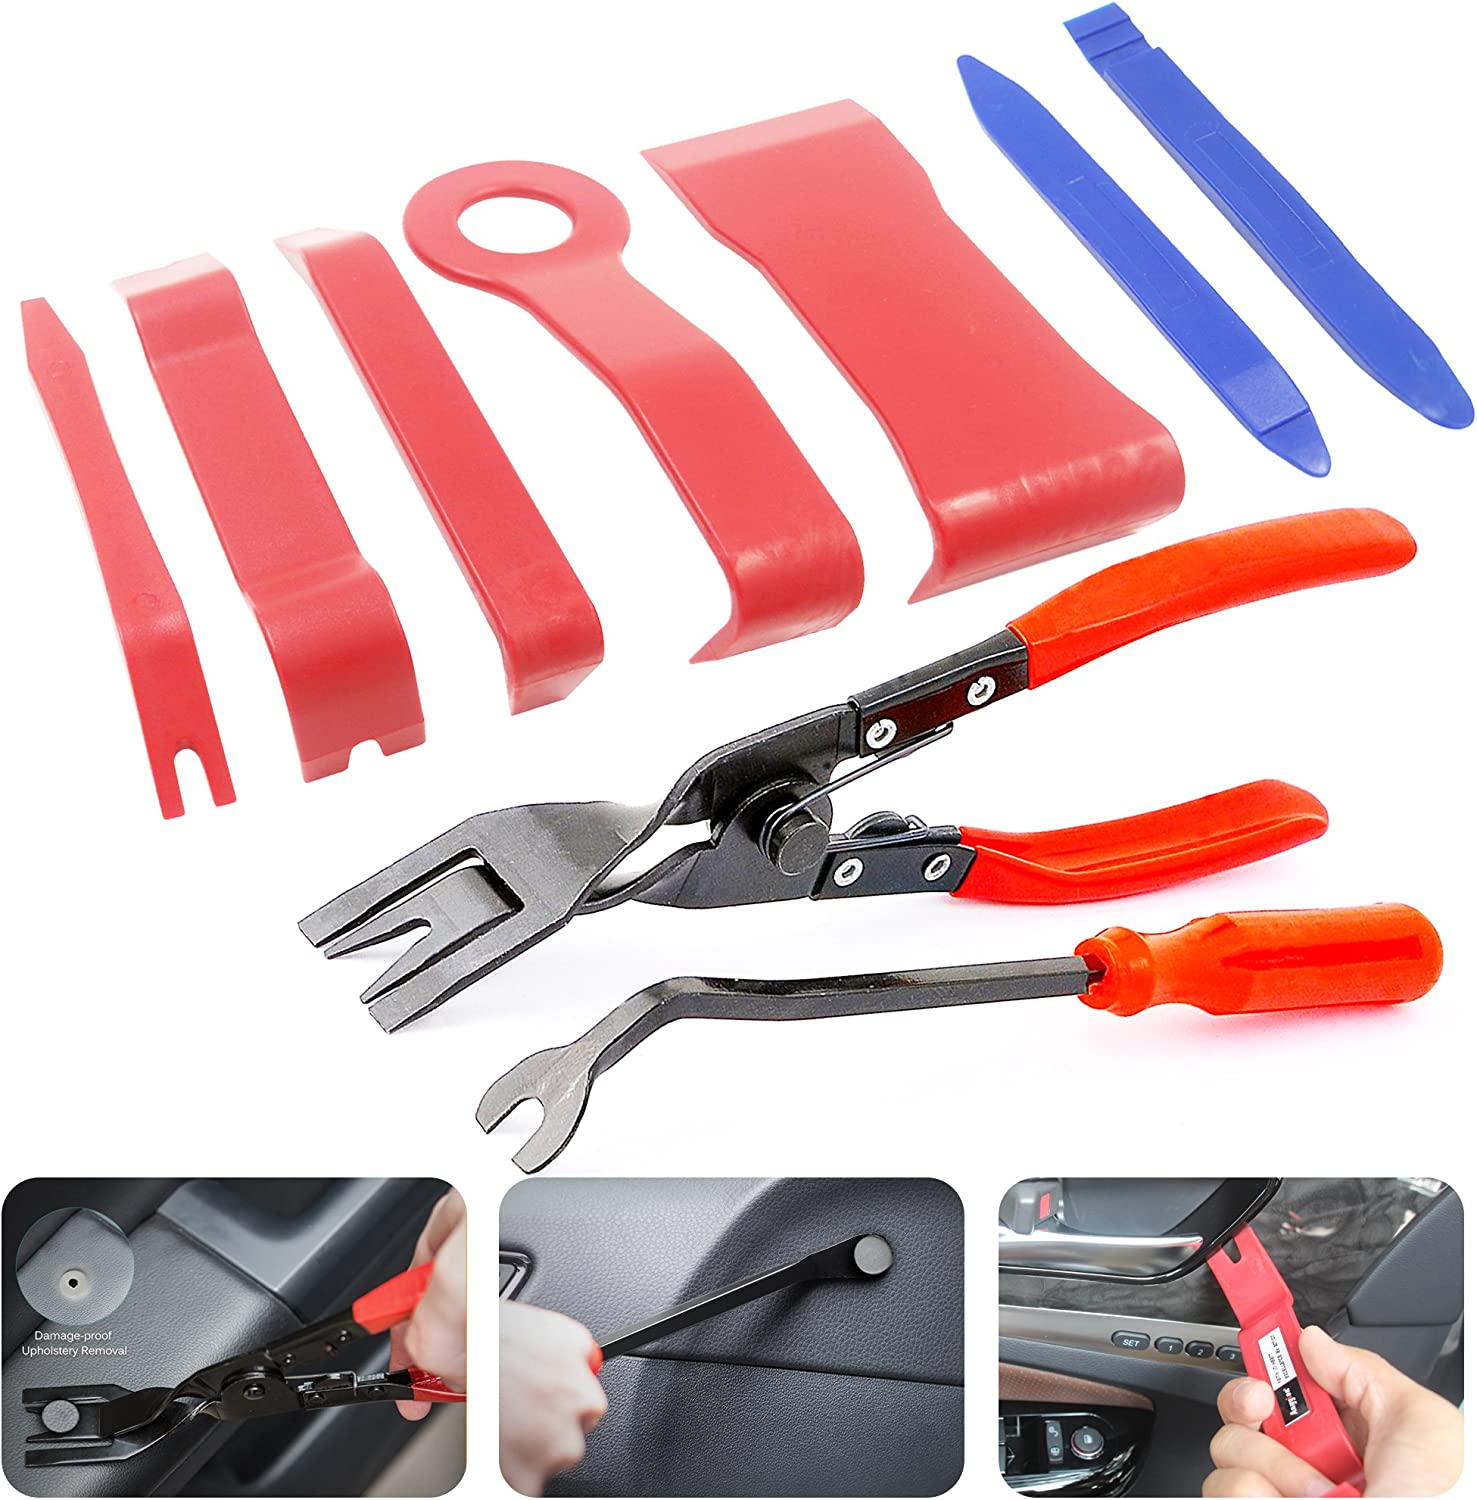 Anyyion Auto Panels Trim Removal Tool 9Pcs Trim Tool for Door Panel Removal Tools or Auto Upholstery Tools or Clip Plier Set (9 PCS)